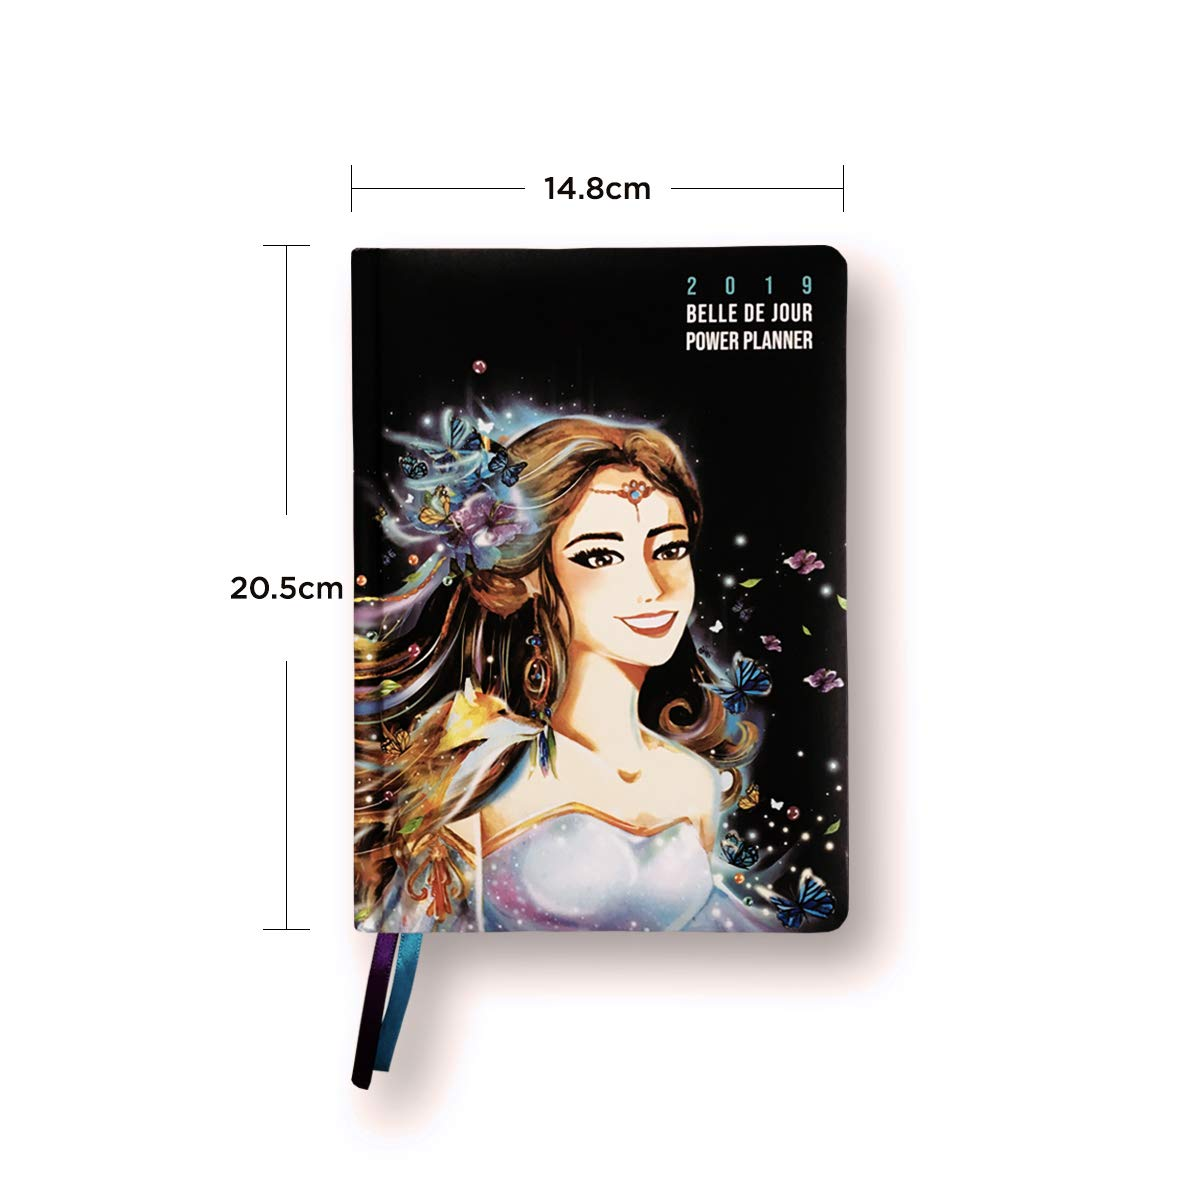 Amazon.com : Belle de Jour Power Planner 2019 for Goal and Life - Weekly,  Monthly and Yearly Planner - Calendar + Organizer - International Edition -  Black, ...